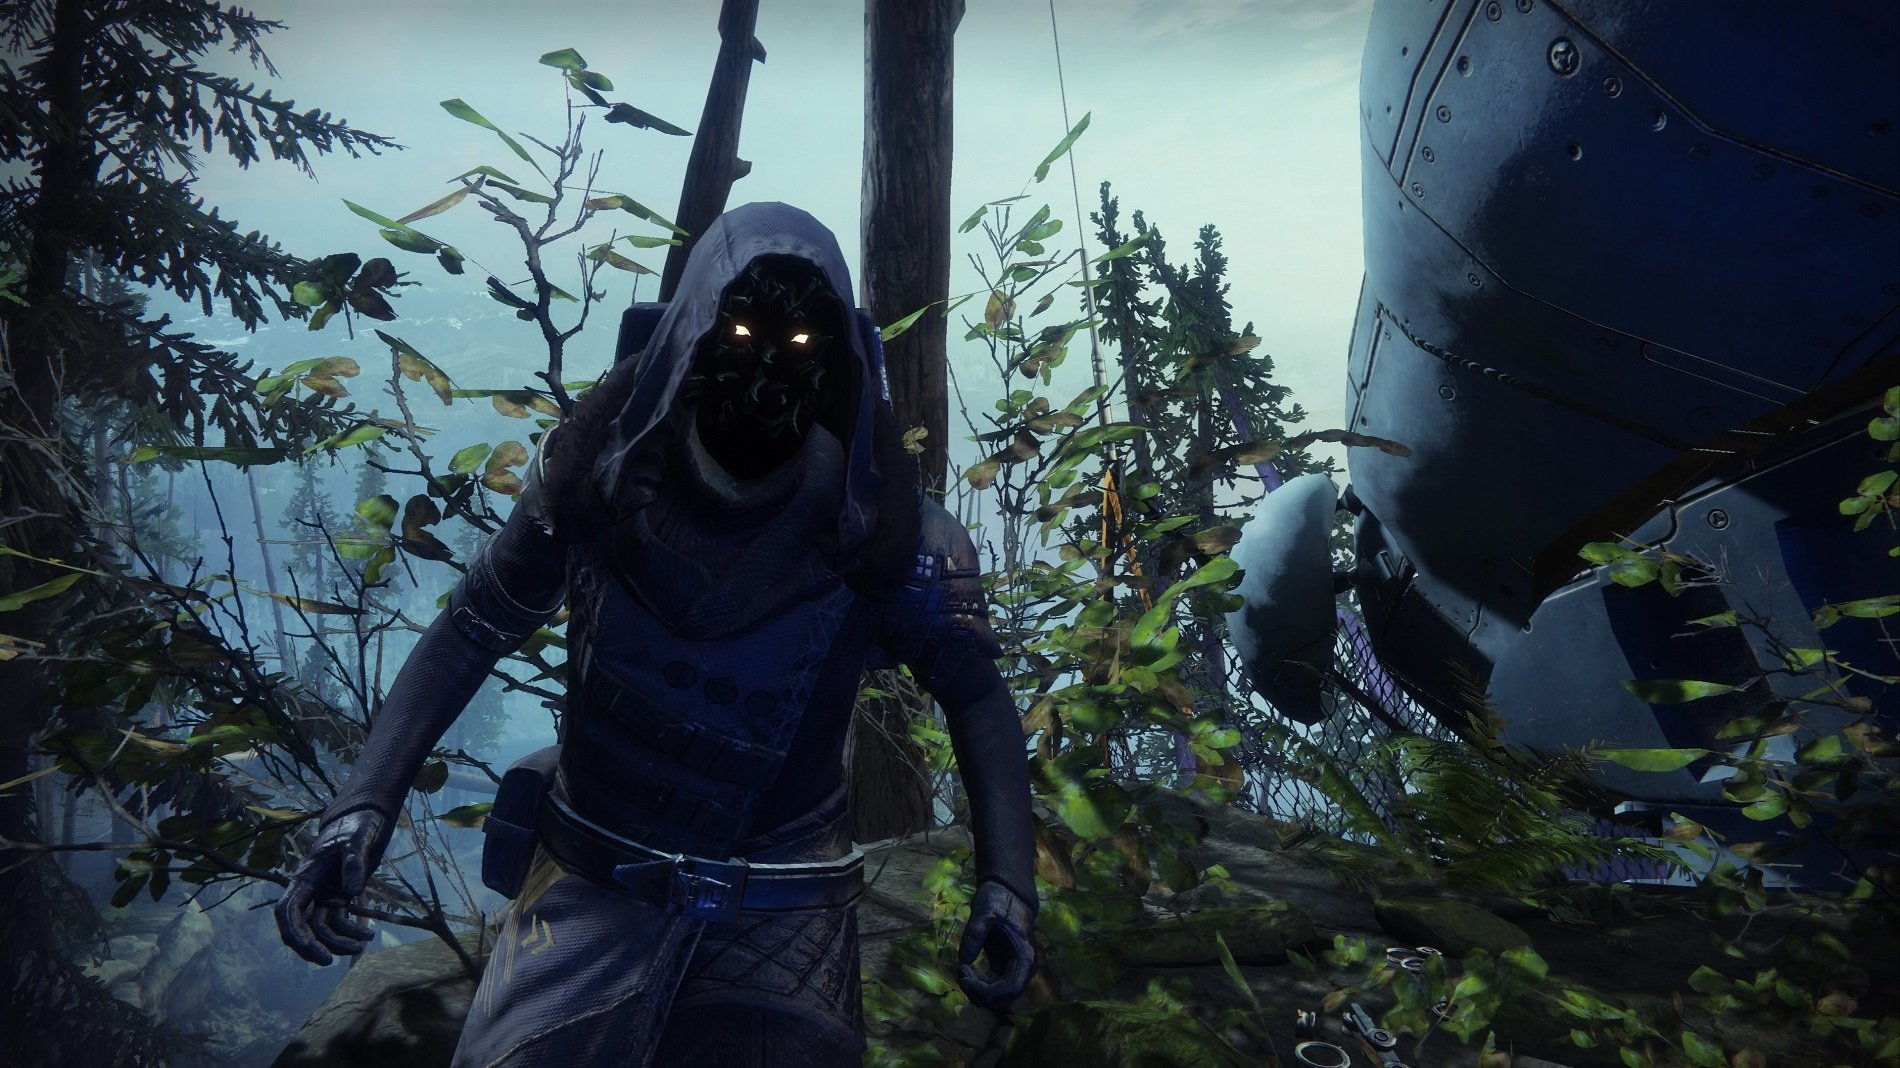 Where to find Xur in Destiny 2 - May 22, 2020